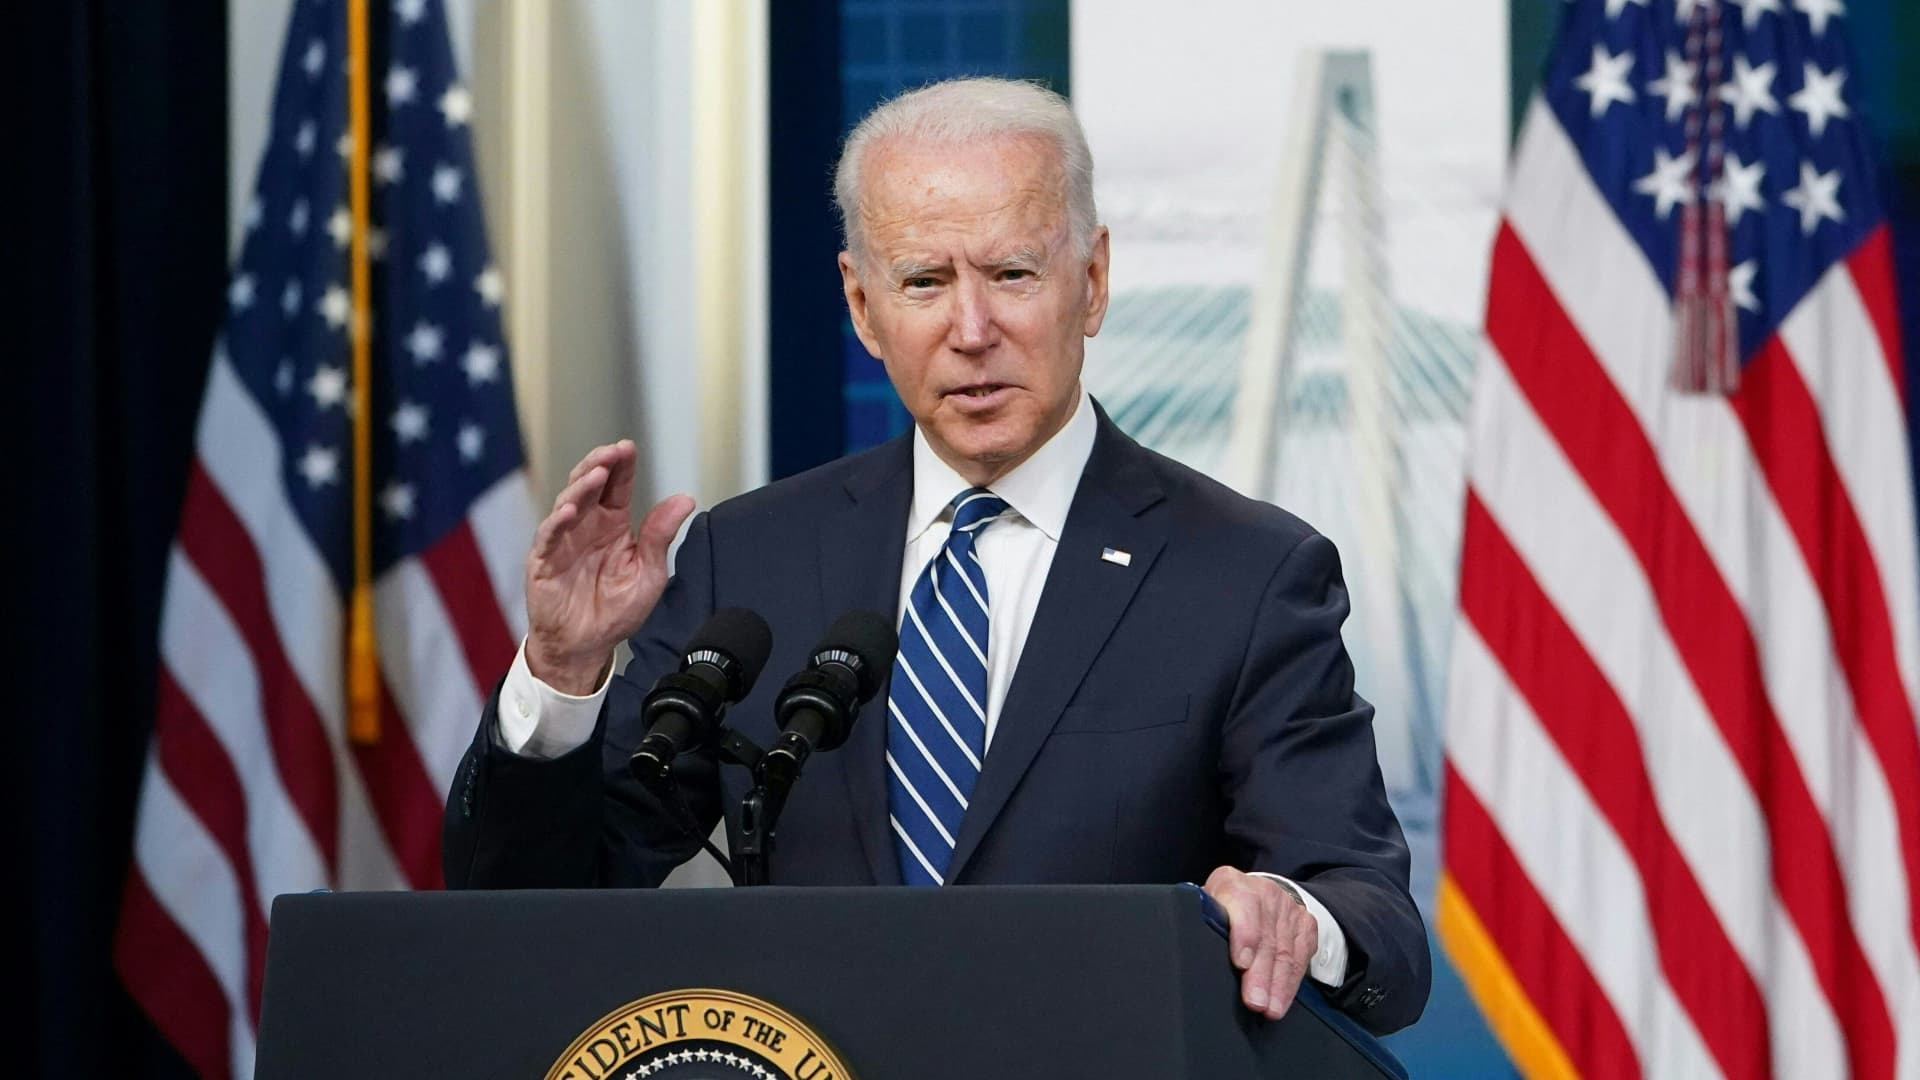 US President Joe Biden speaks on the June jobs report in the South Court Auditorium of the Eisenhower Executive Office Building, next to the White House, in Washington, DC on July 2, 2021.